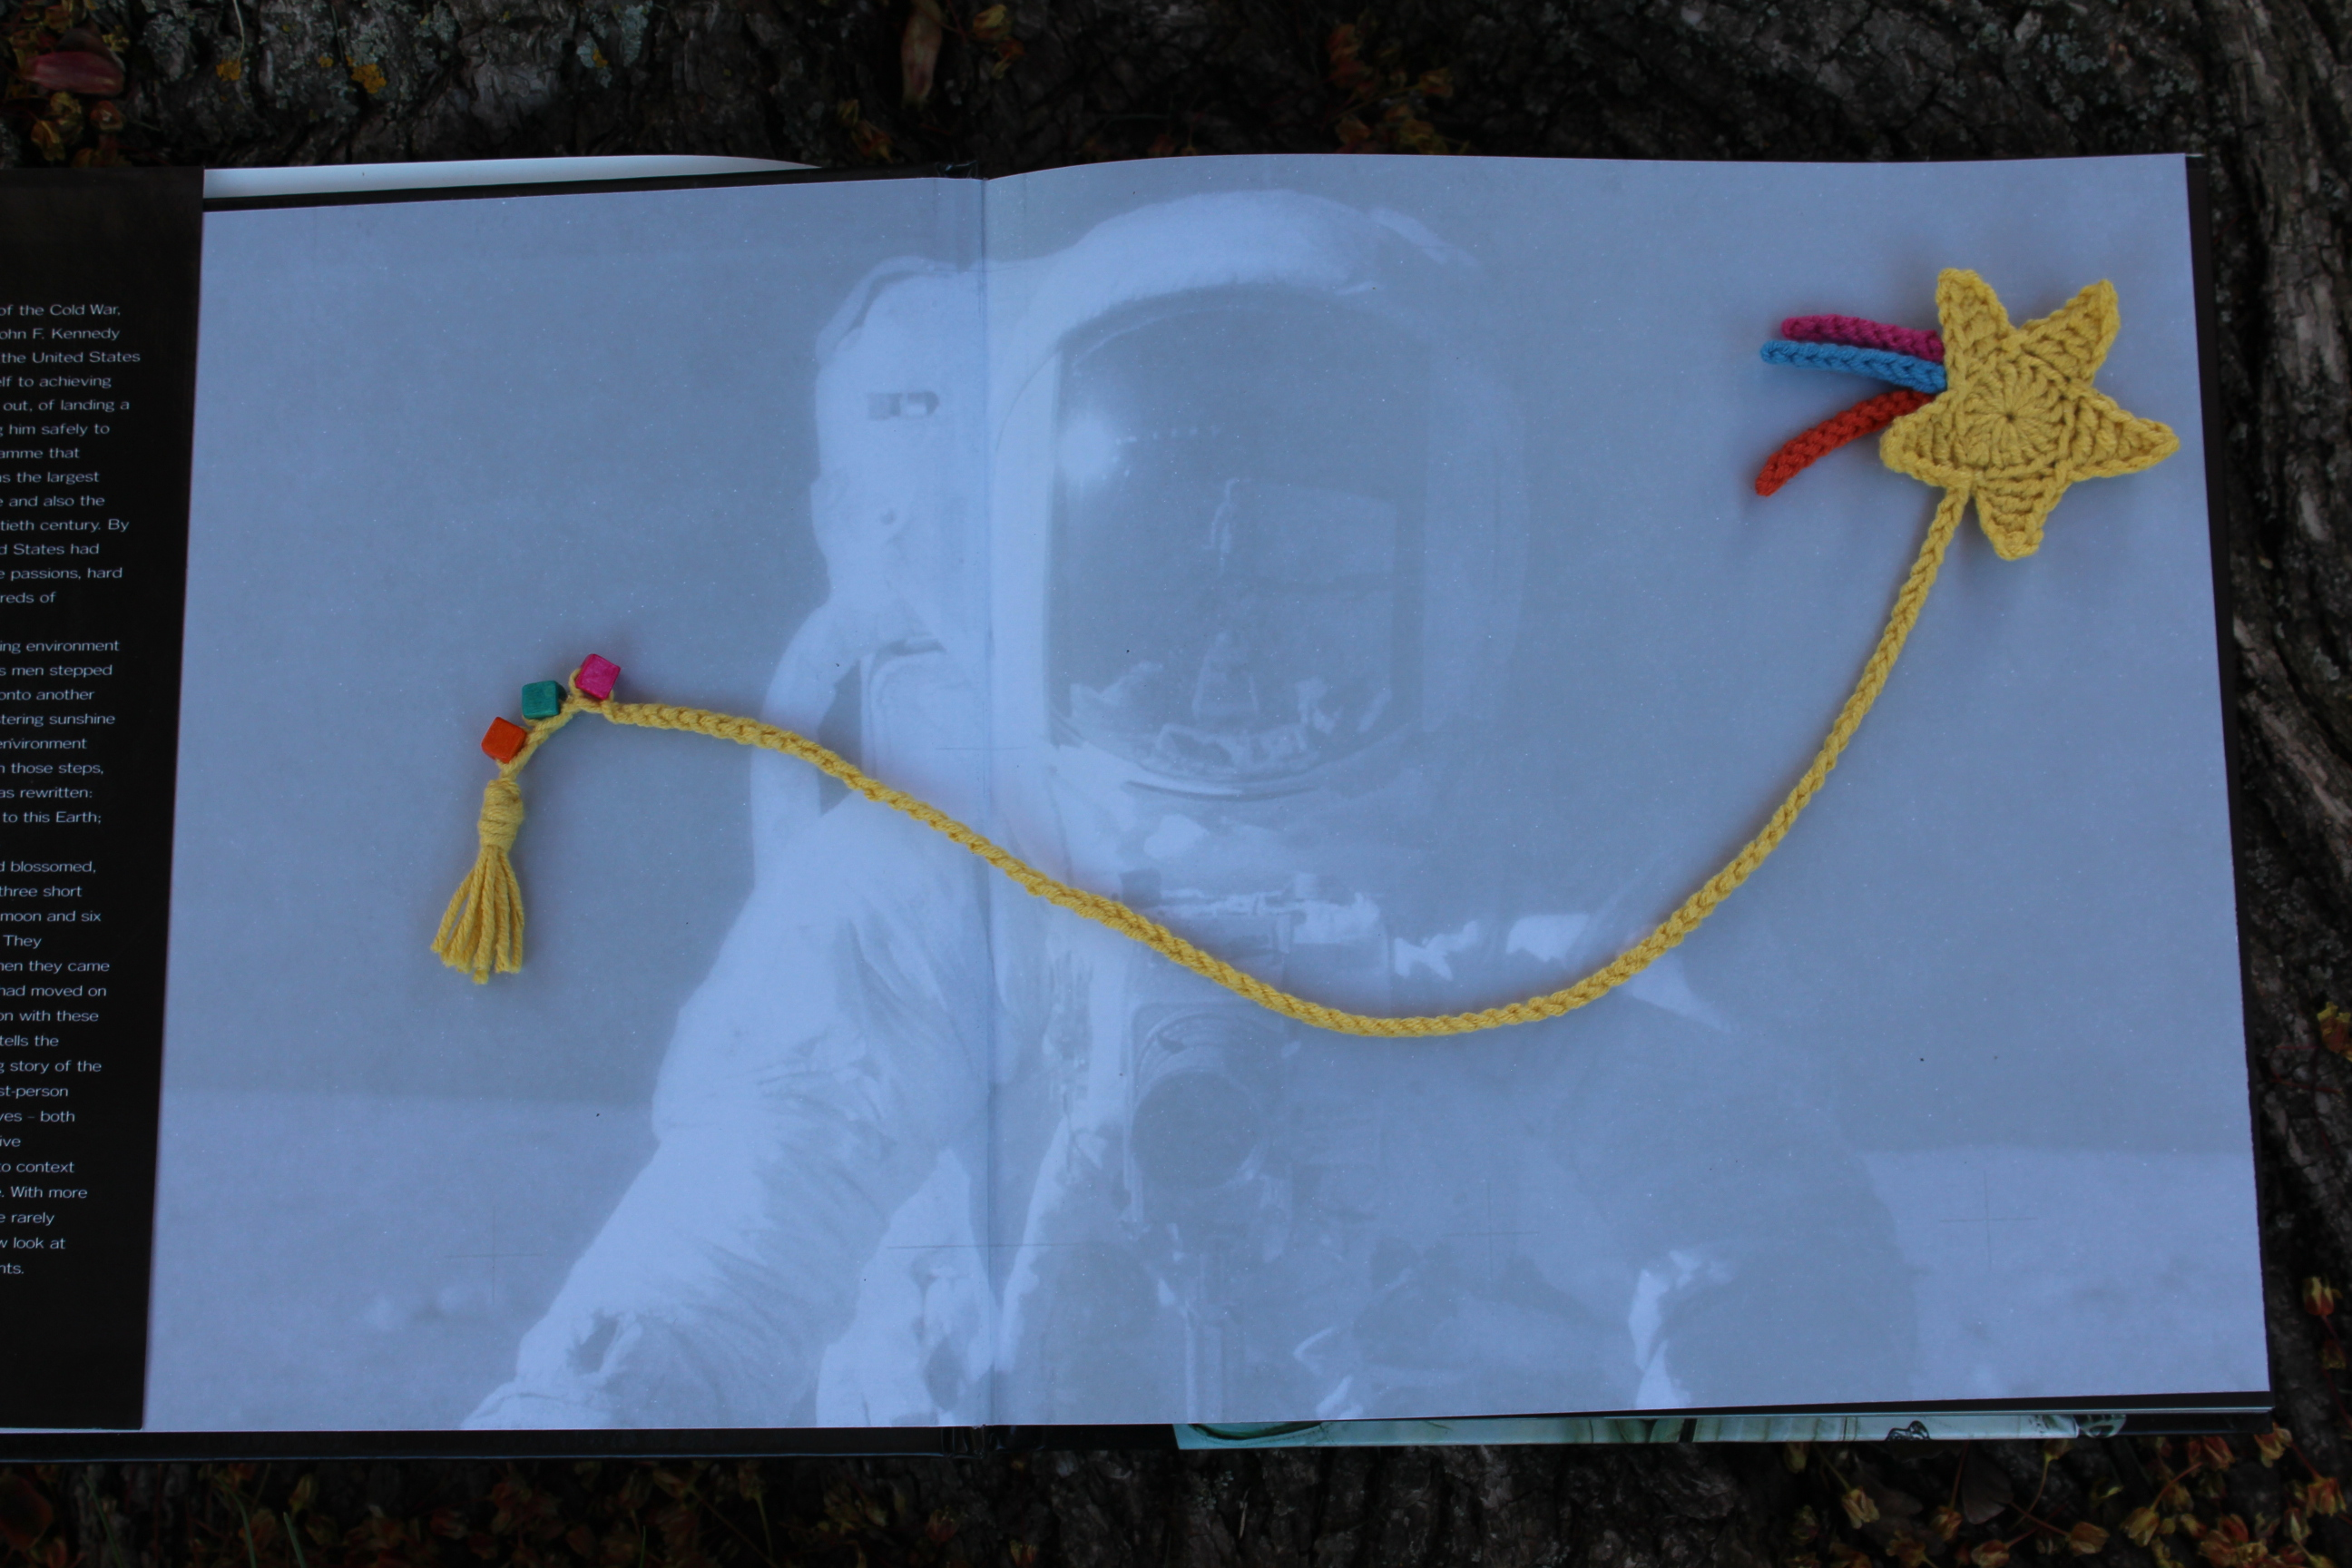 Shooting Star crochet bookmark being displayed on the first pages of the book Destination Moon.